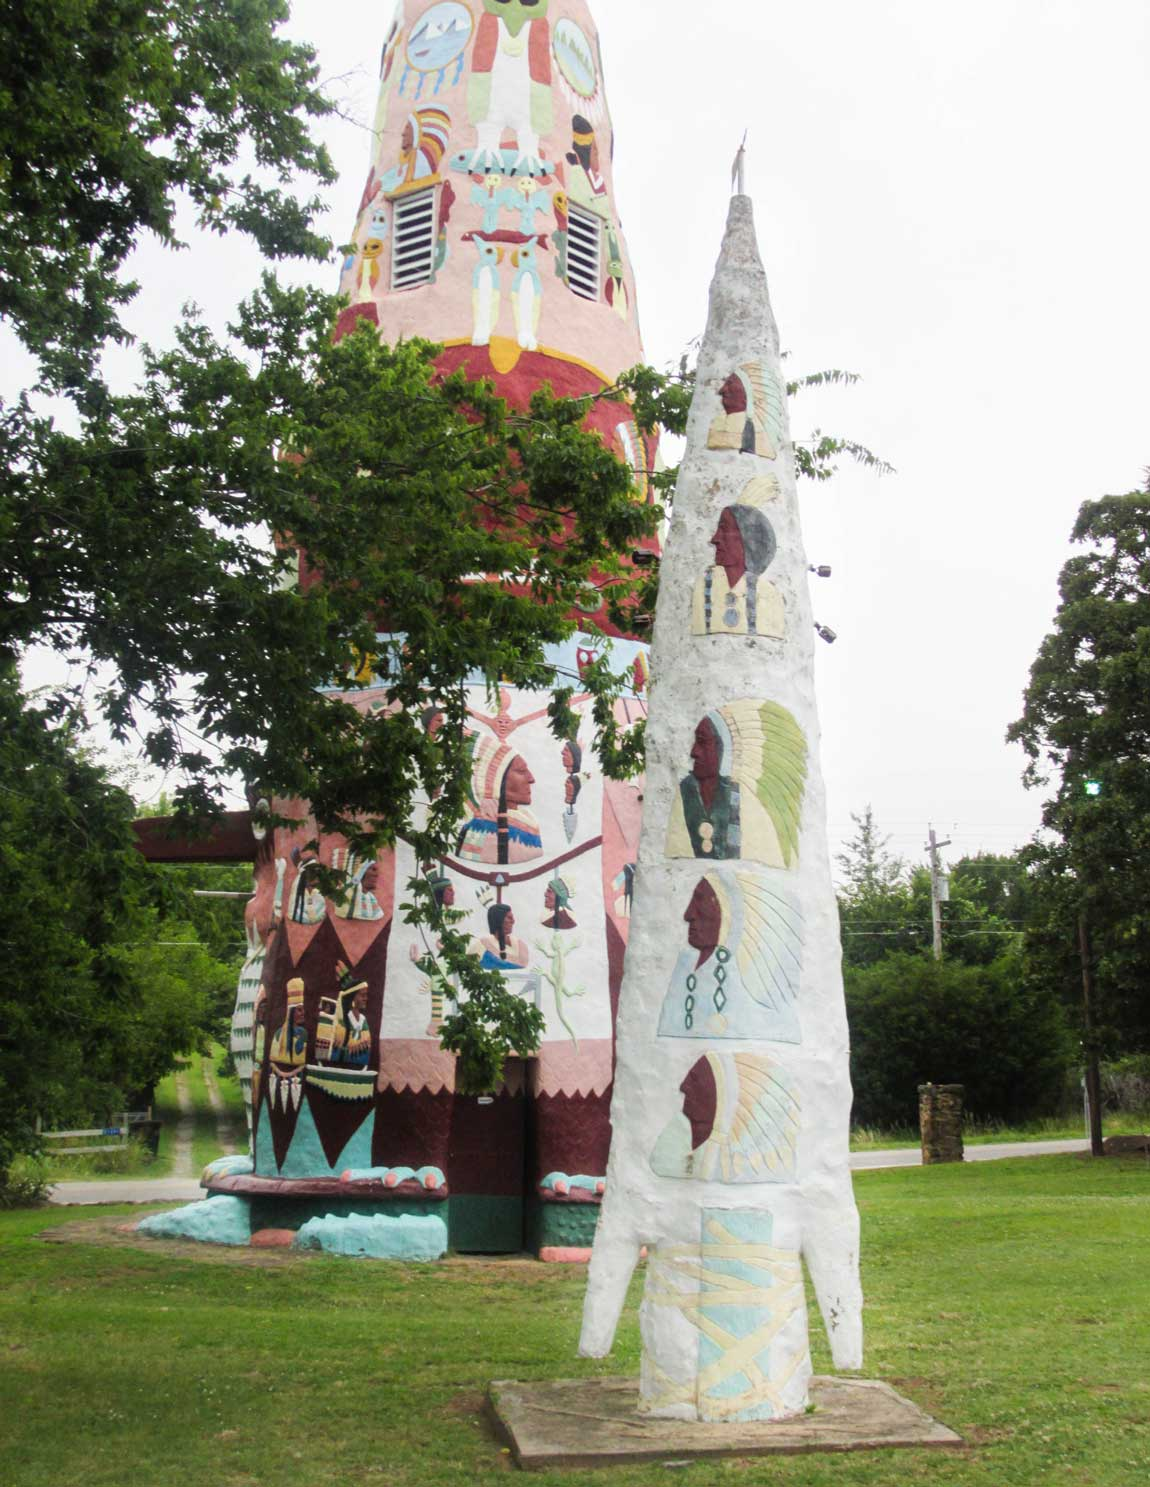 Andy Payne Monument in Foyil - Route 66 Oklahoma: All Towns and Attractions to See - Christobel Travel